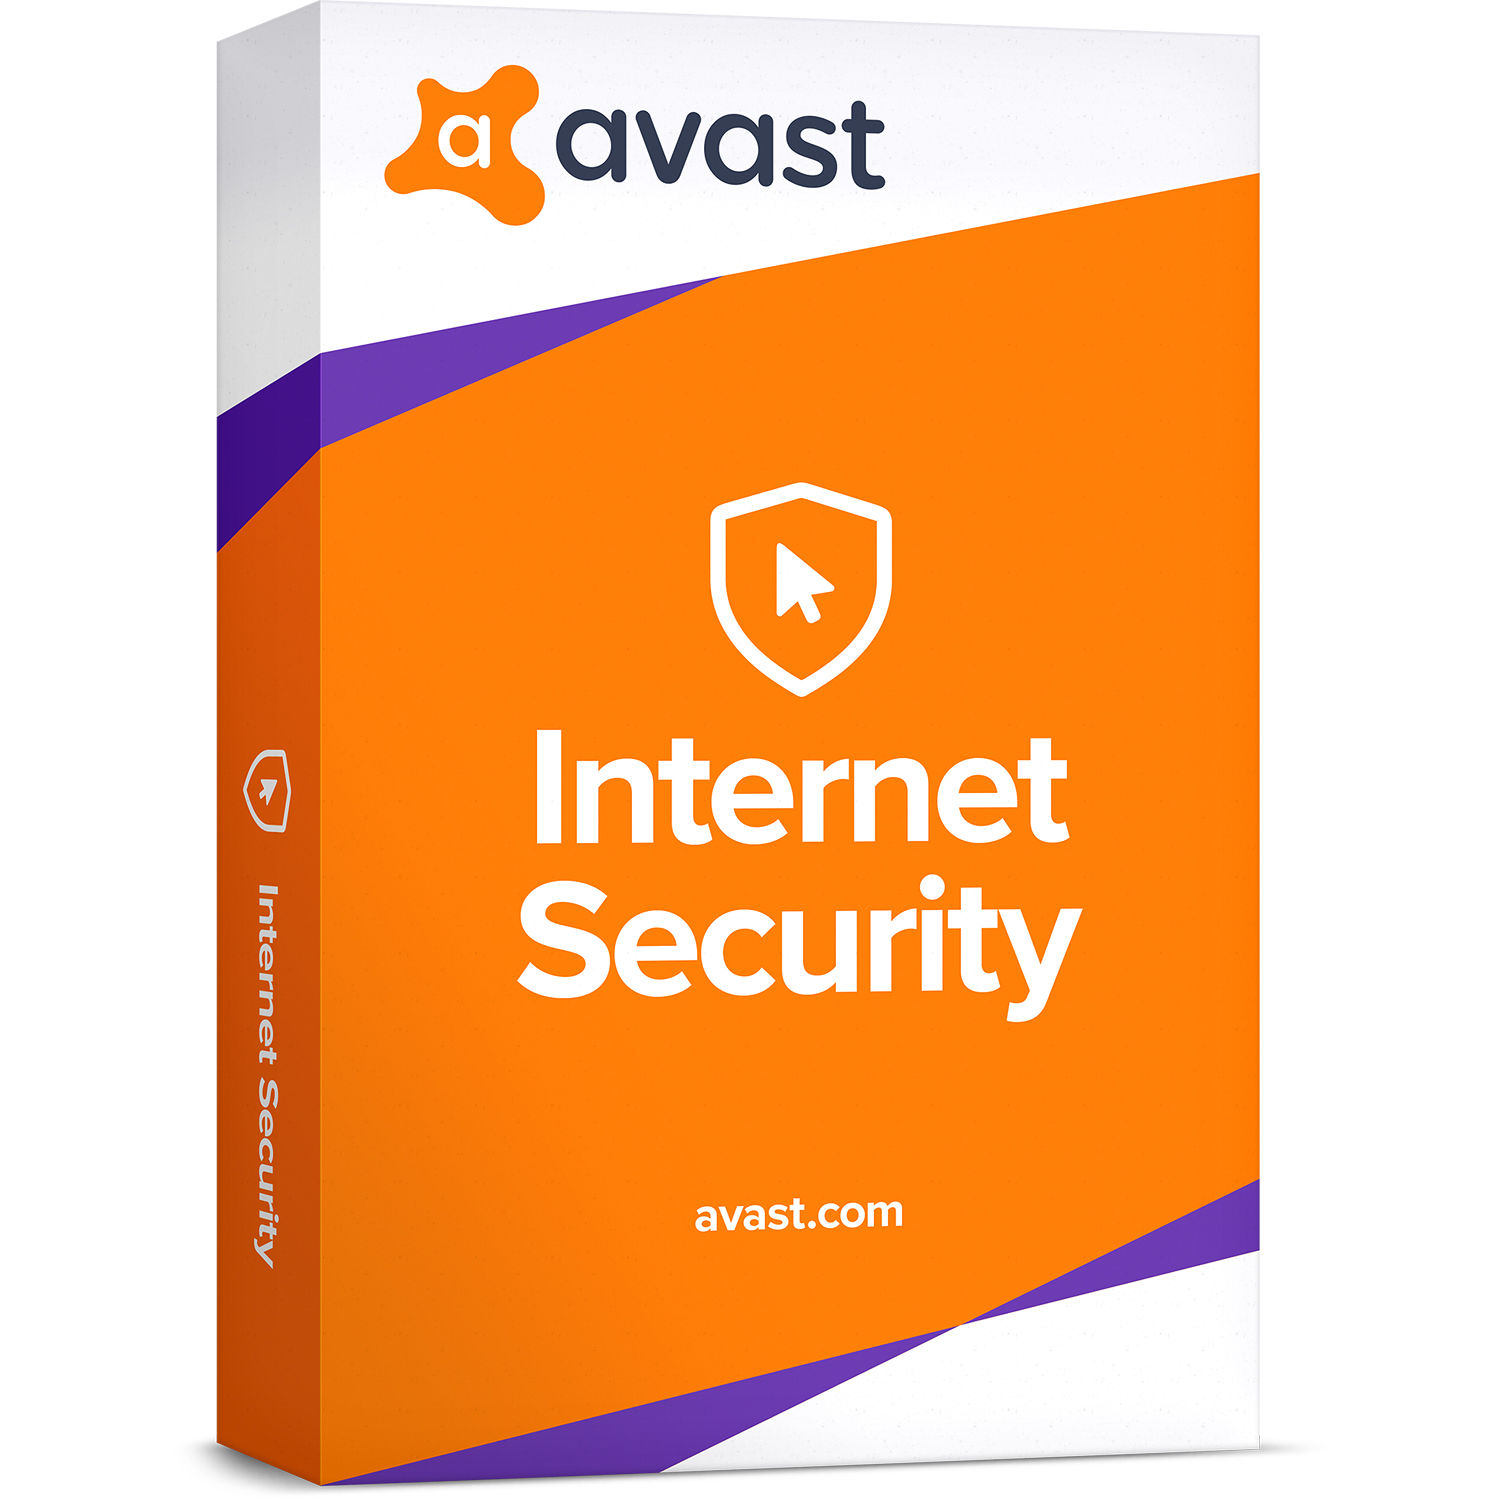 how to download video avast browser